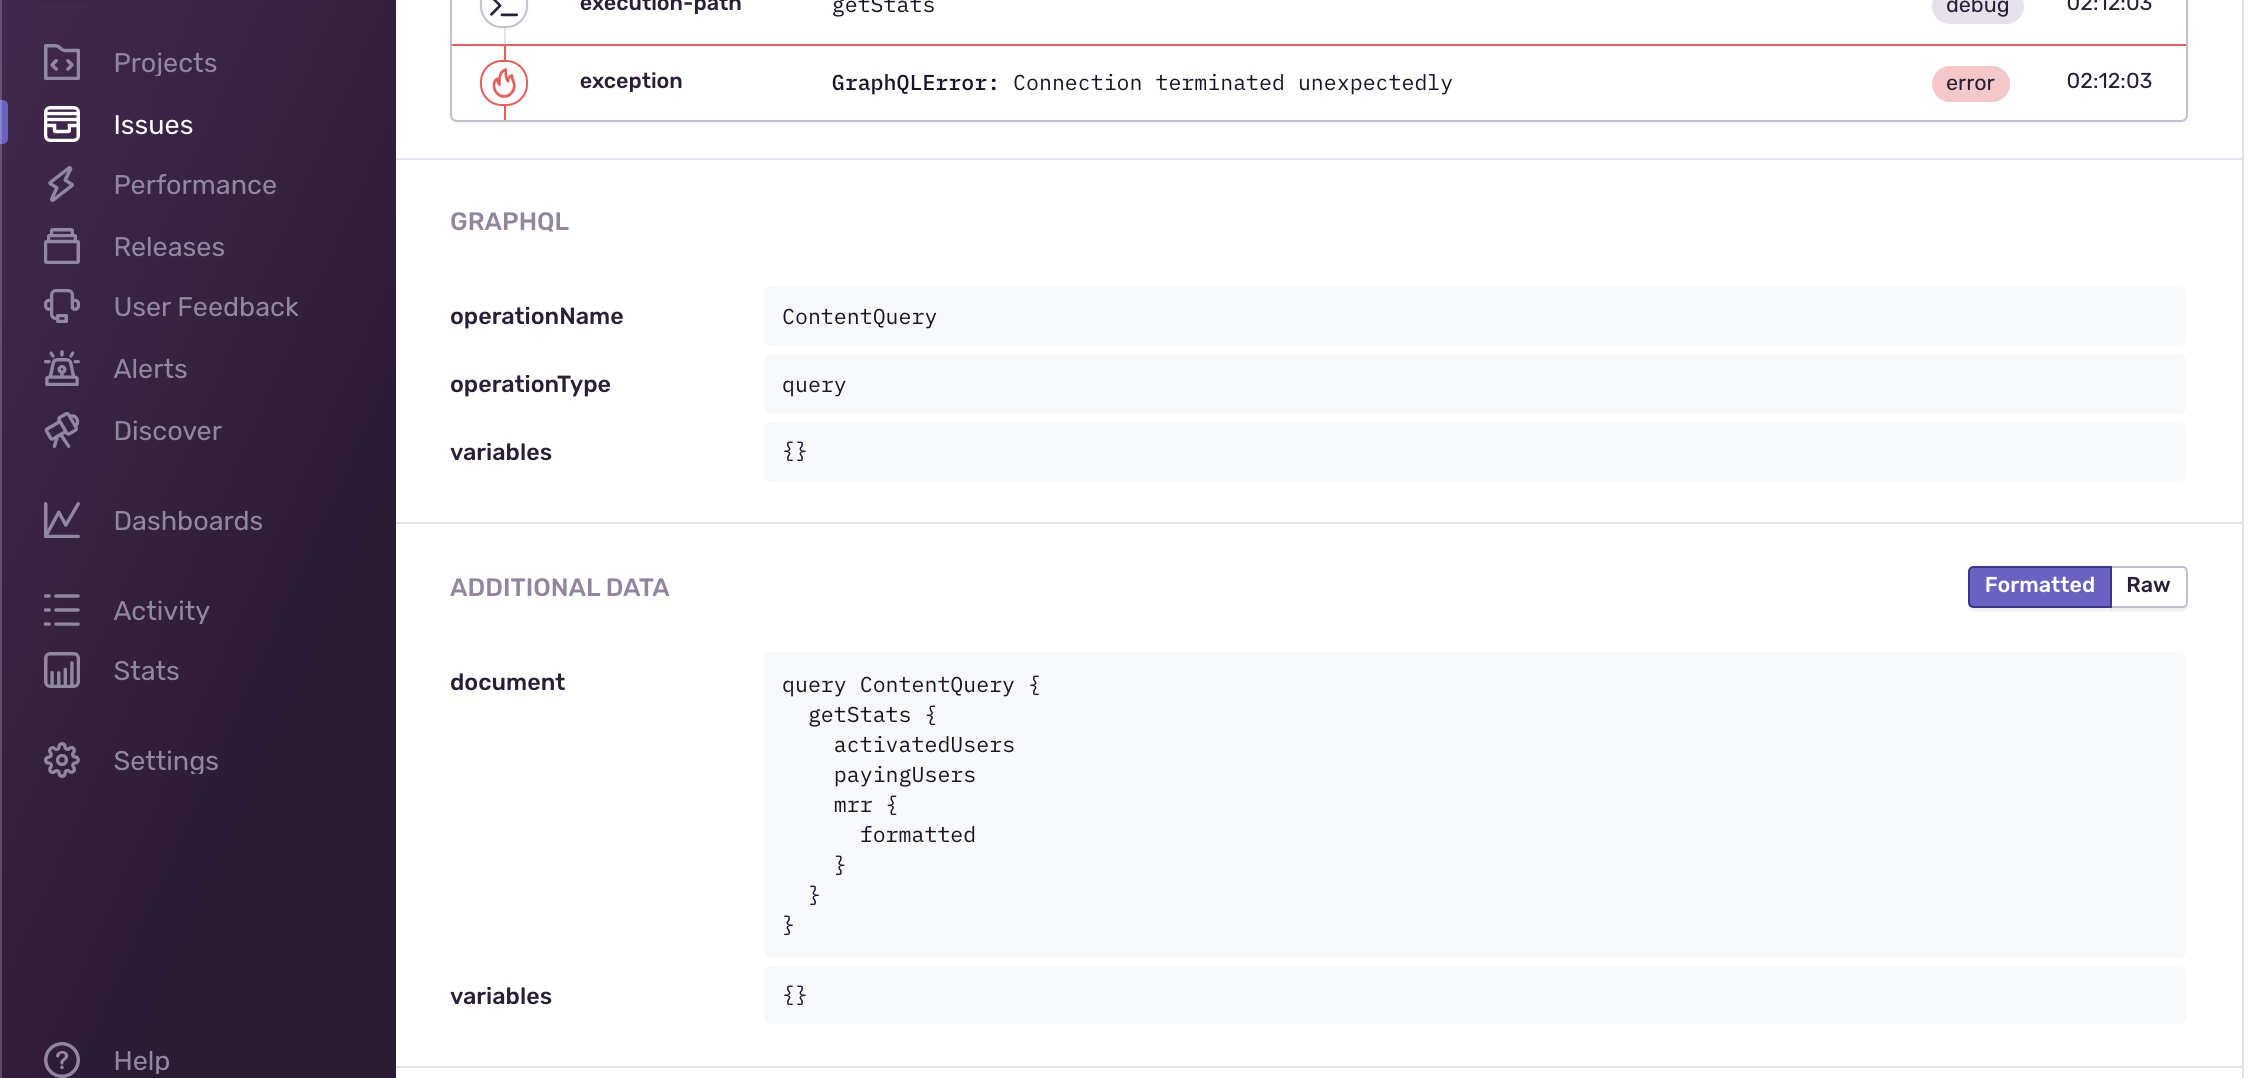 Example reported error on sentry